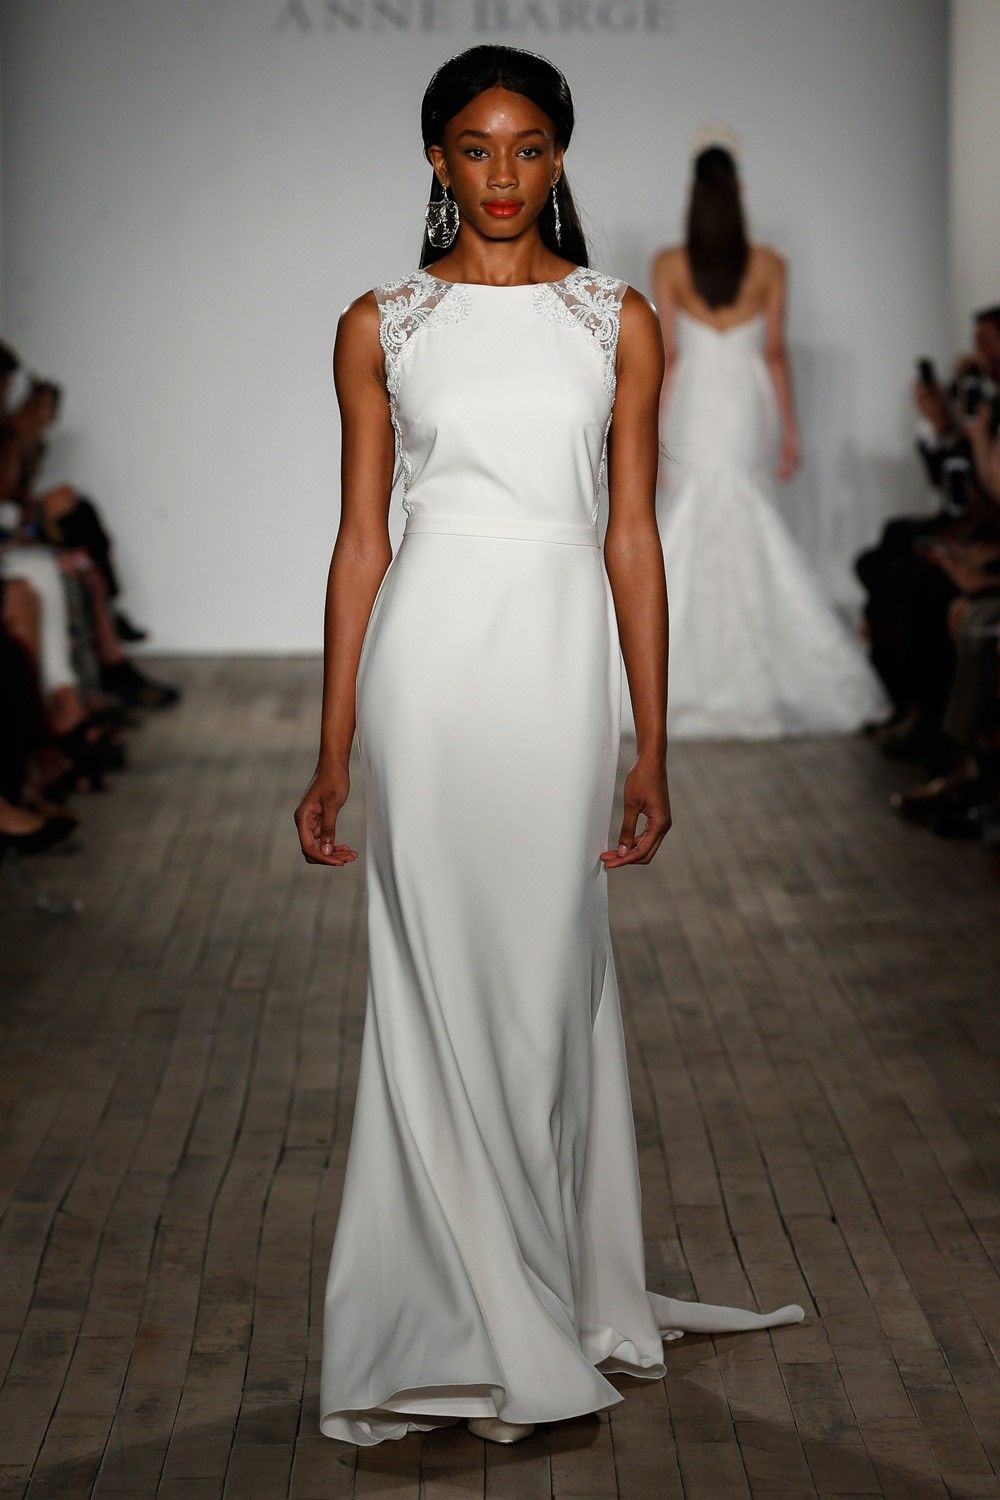 Best wedding dress boutiques in london  The Top Bridal Trends for   Brides Grooms Weddings